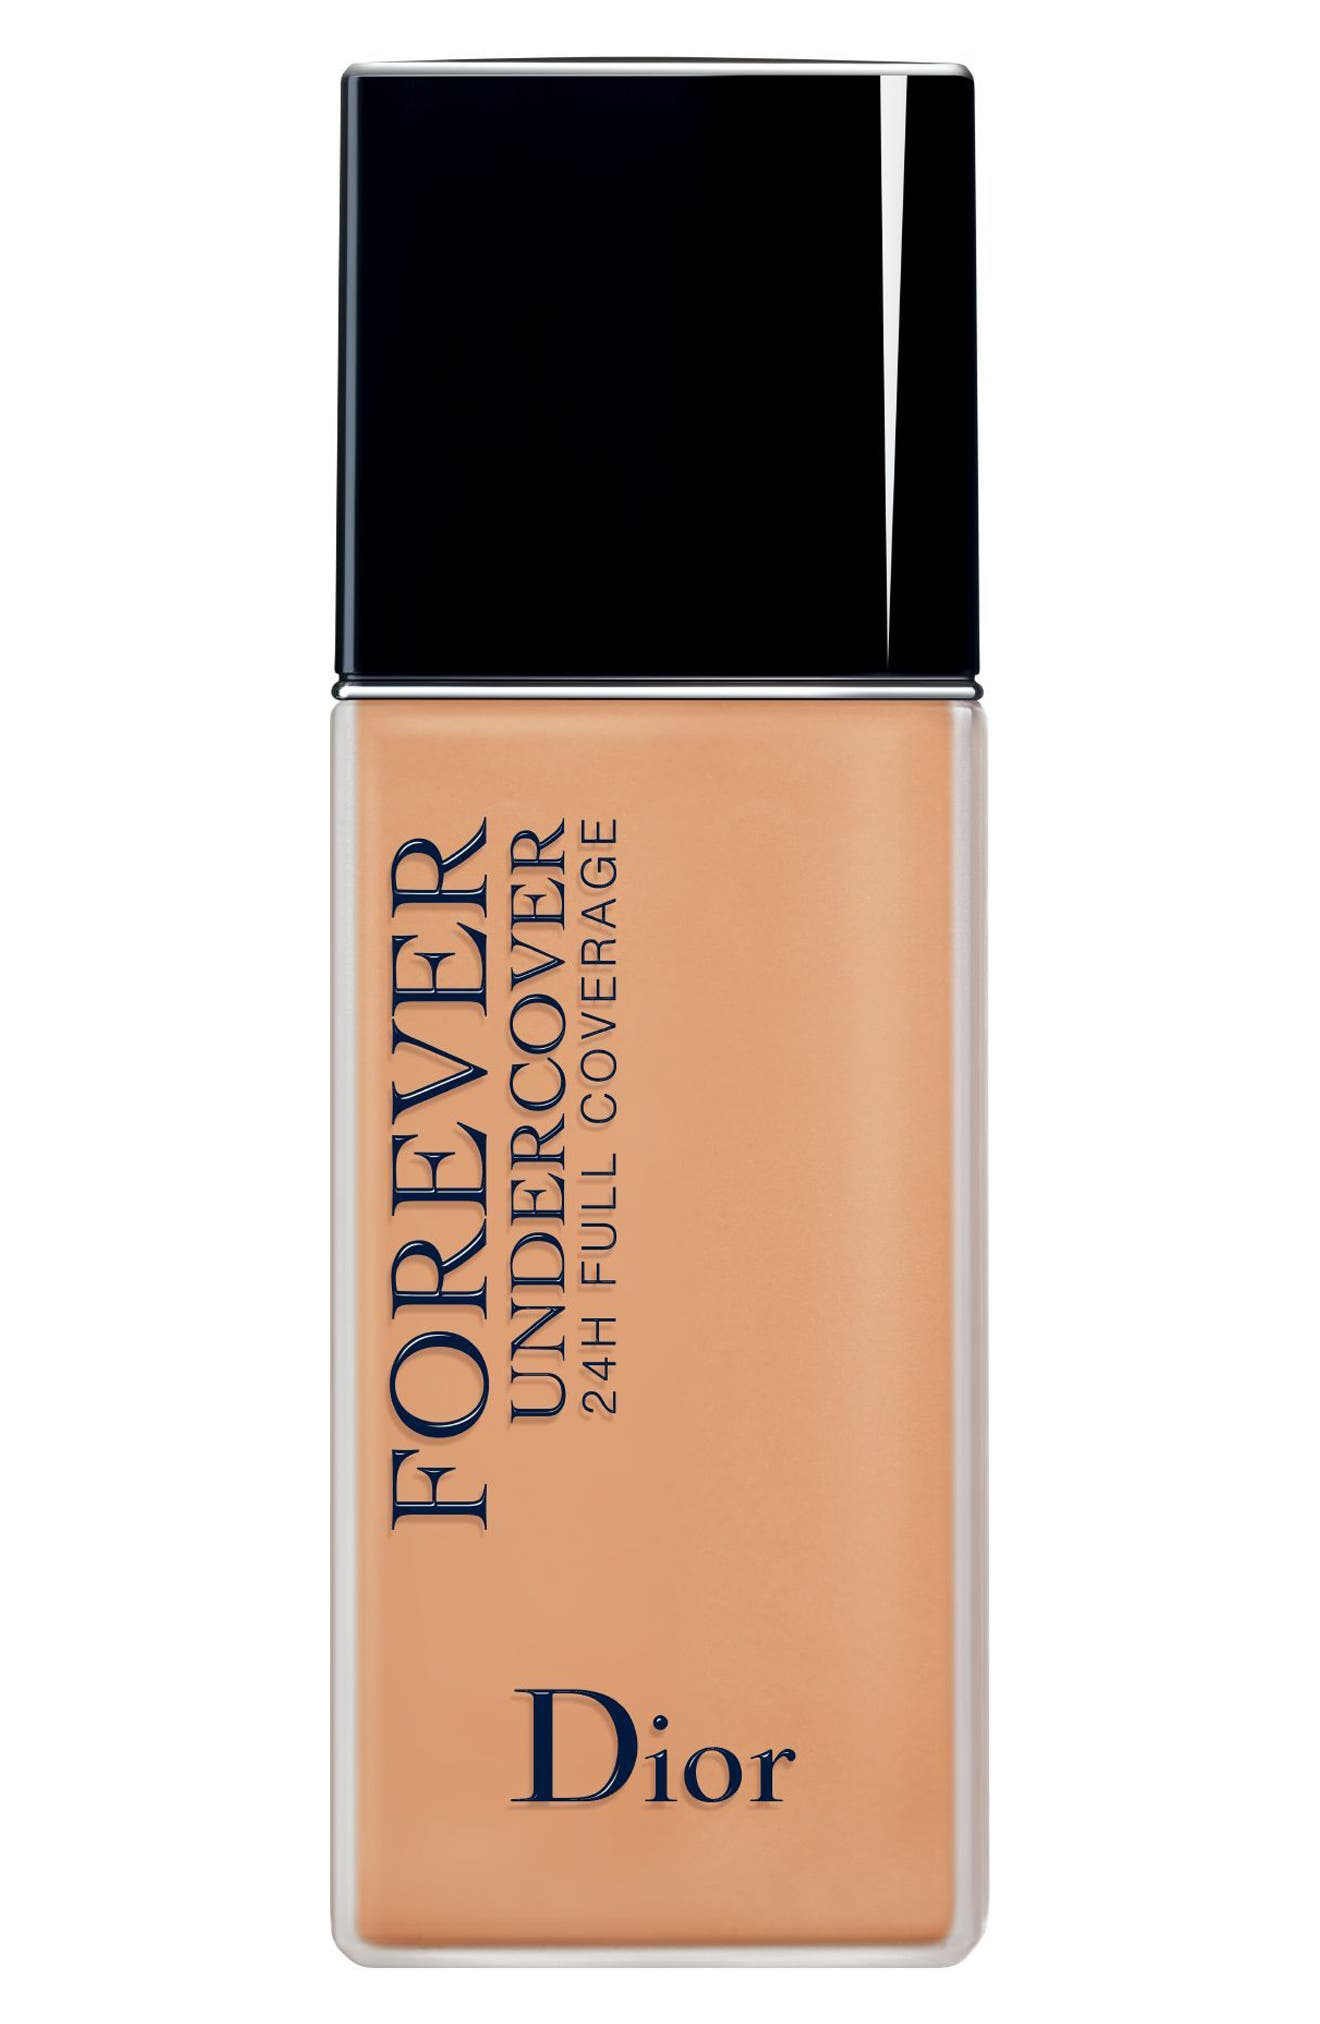 Dior Diorskin Forever Undercover 24-Hour Full Coverage Water-Based Foundation - 041 Ochre